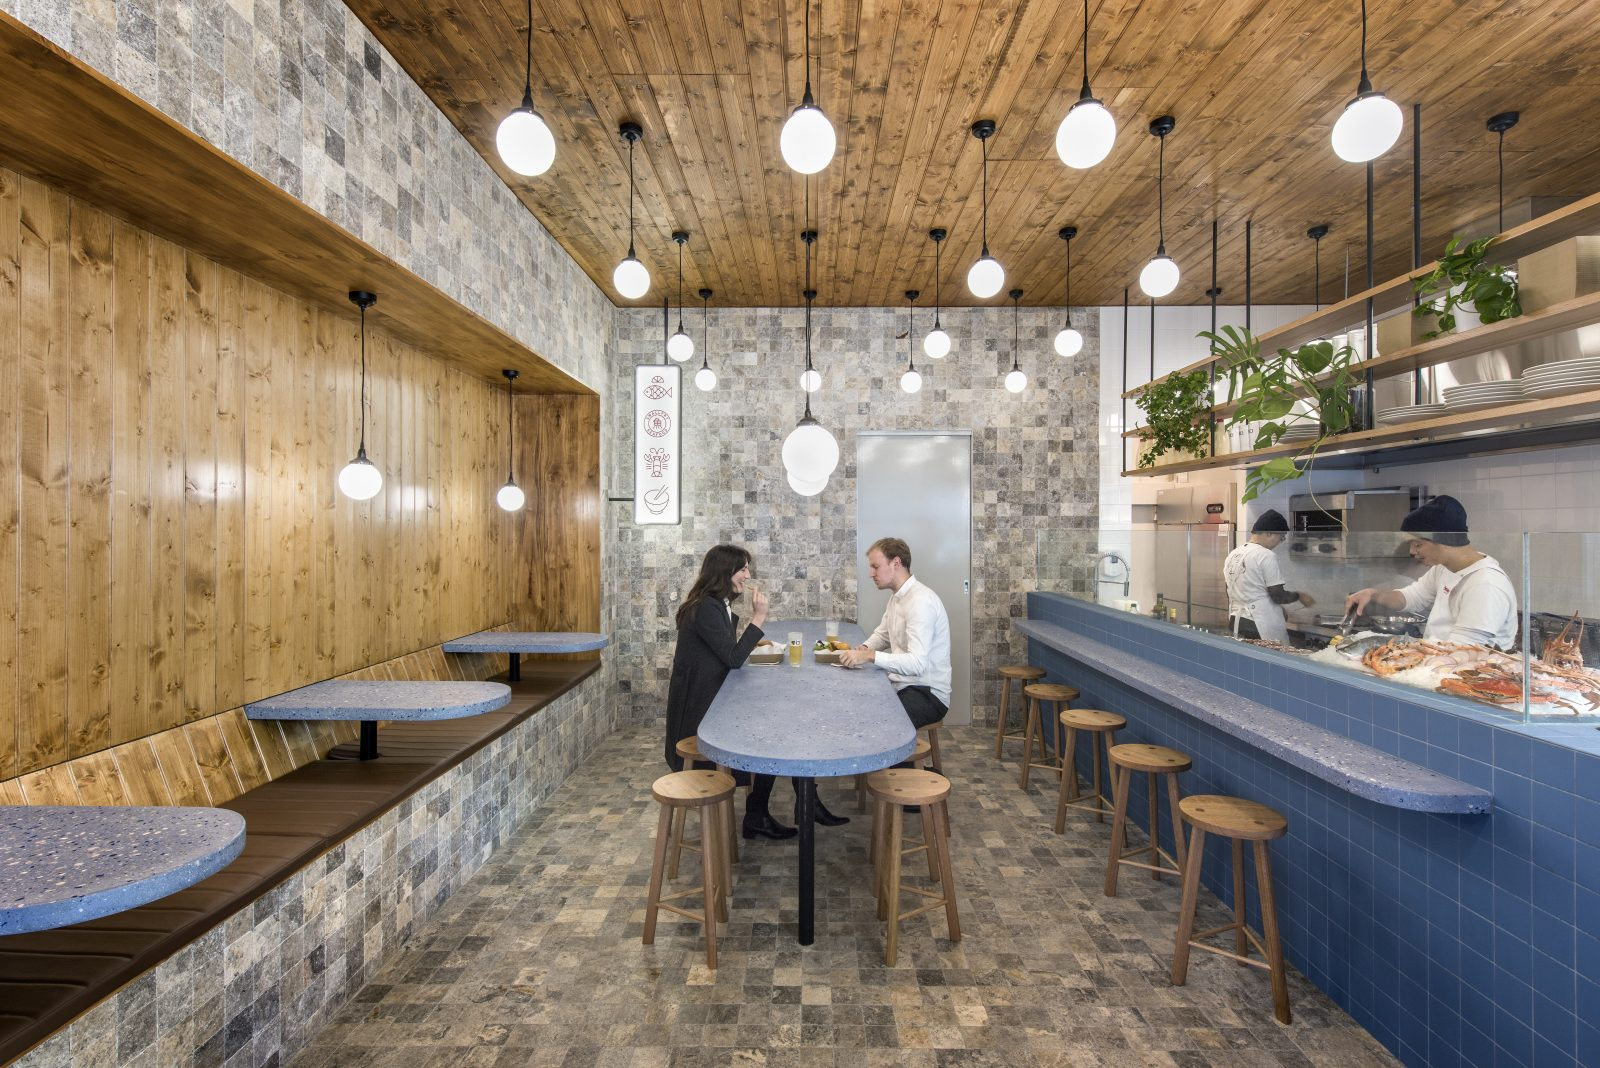 Smallfry by Sans Arc Studio - Interior Archive - Australian Architecture - The Local Project - Image 3